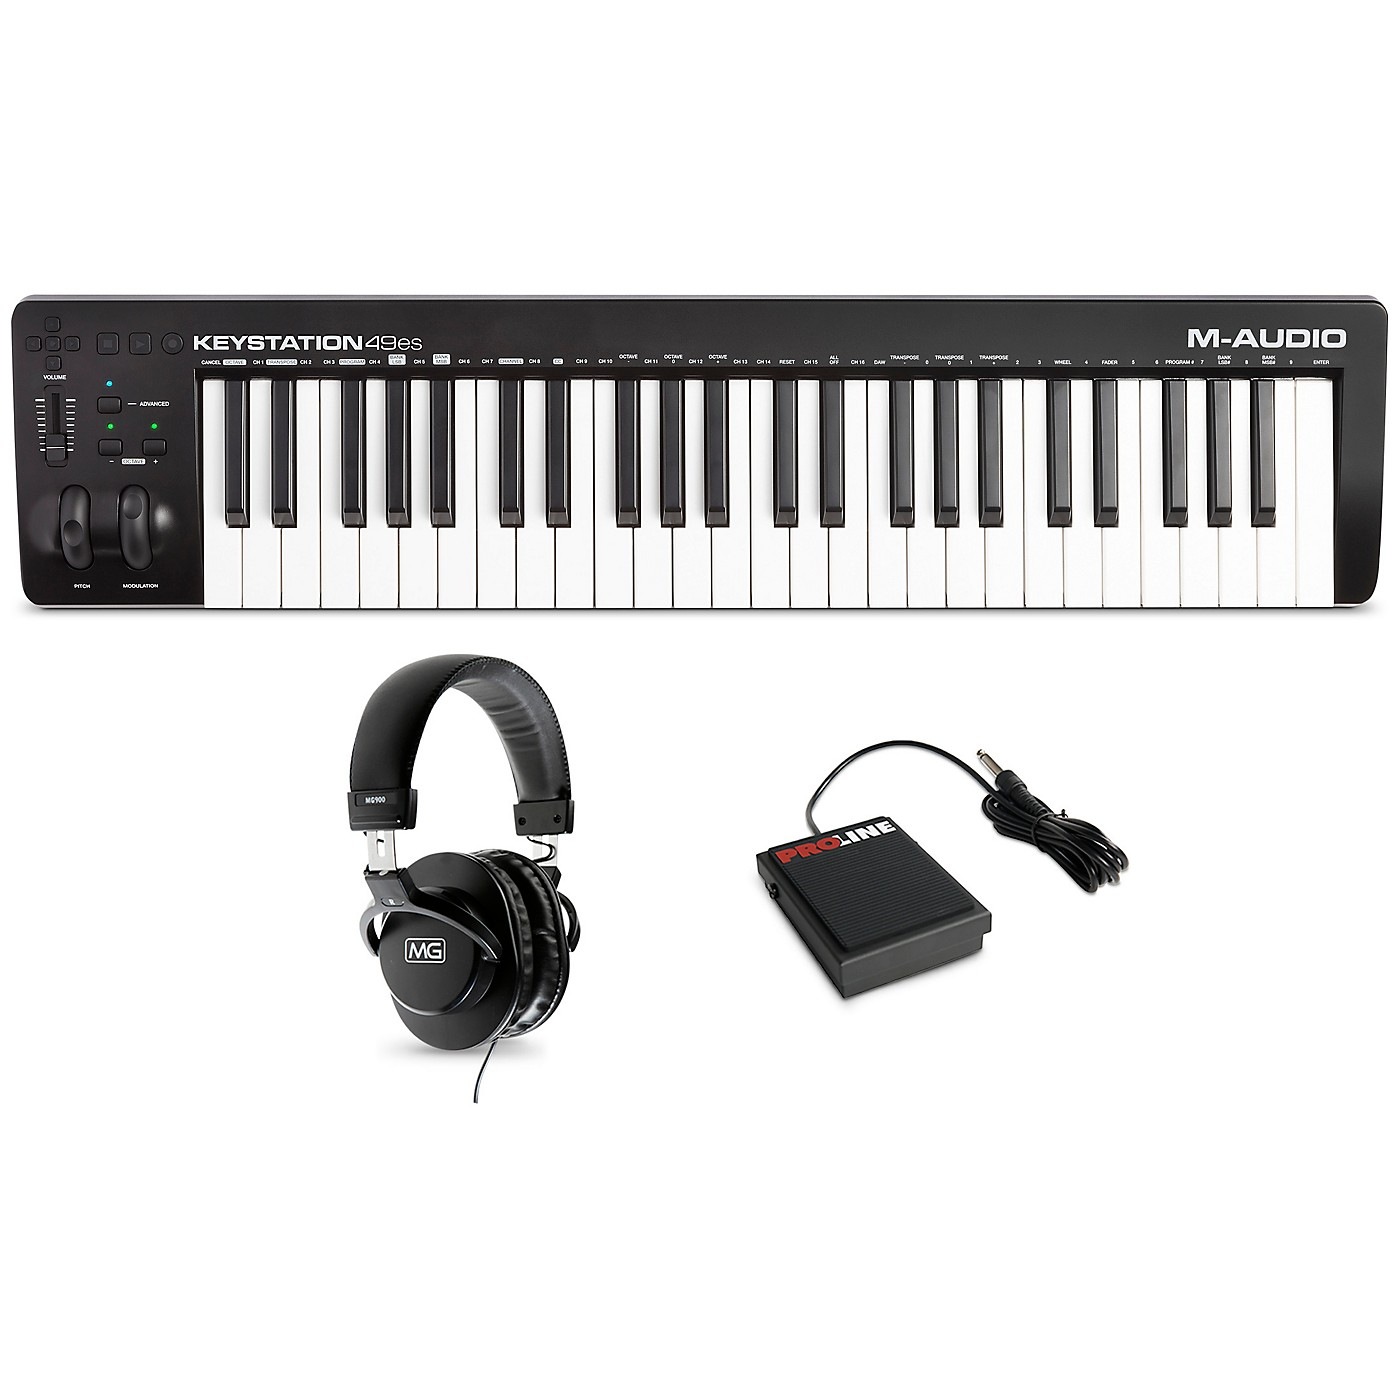 M-Audio Keystation 49es MK3 Controller With Sustain Pedal and Headphones thumbnail